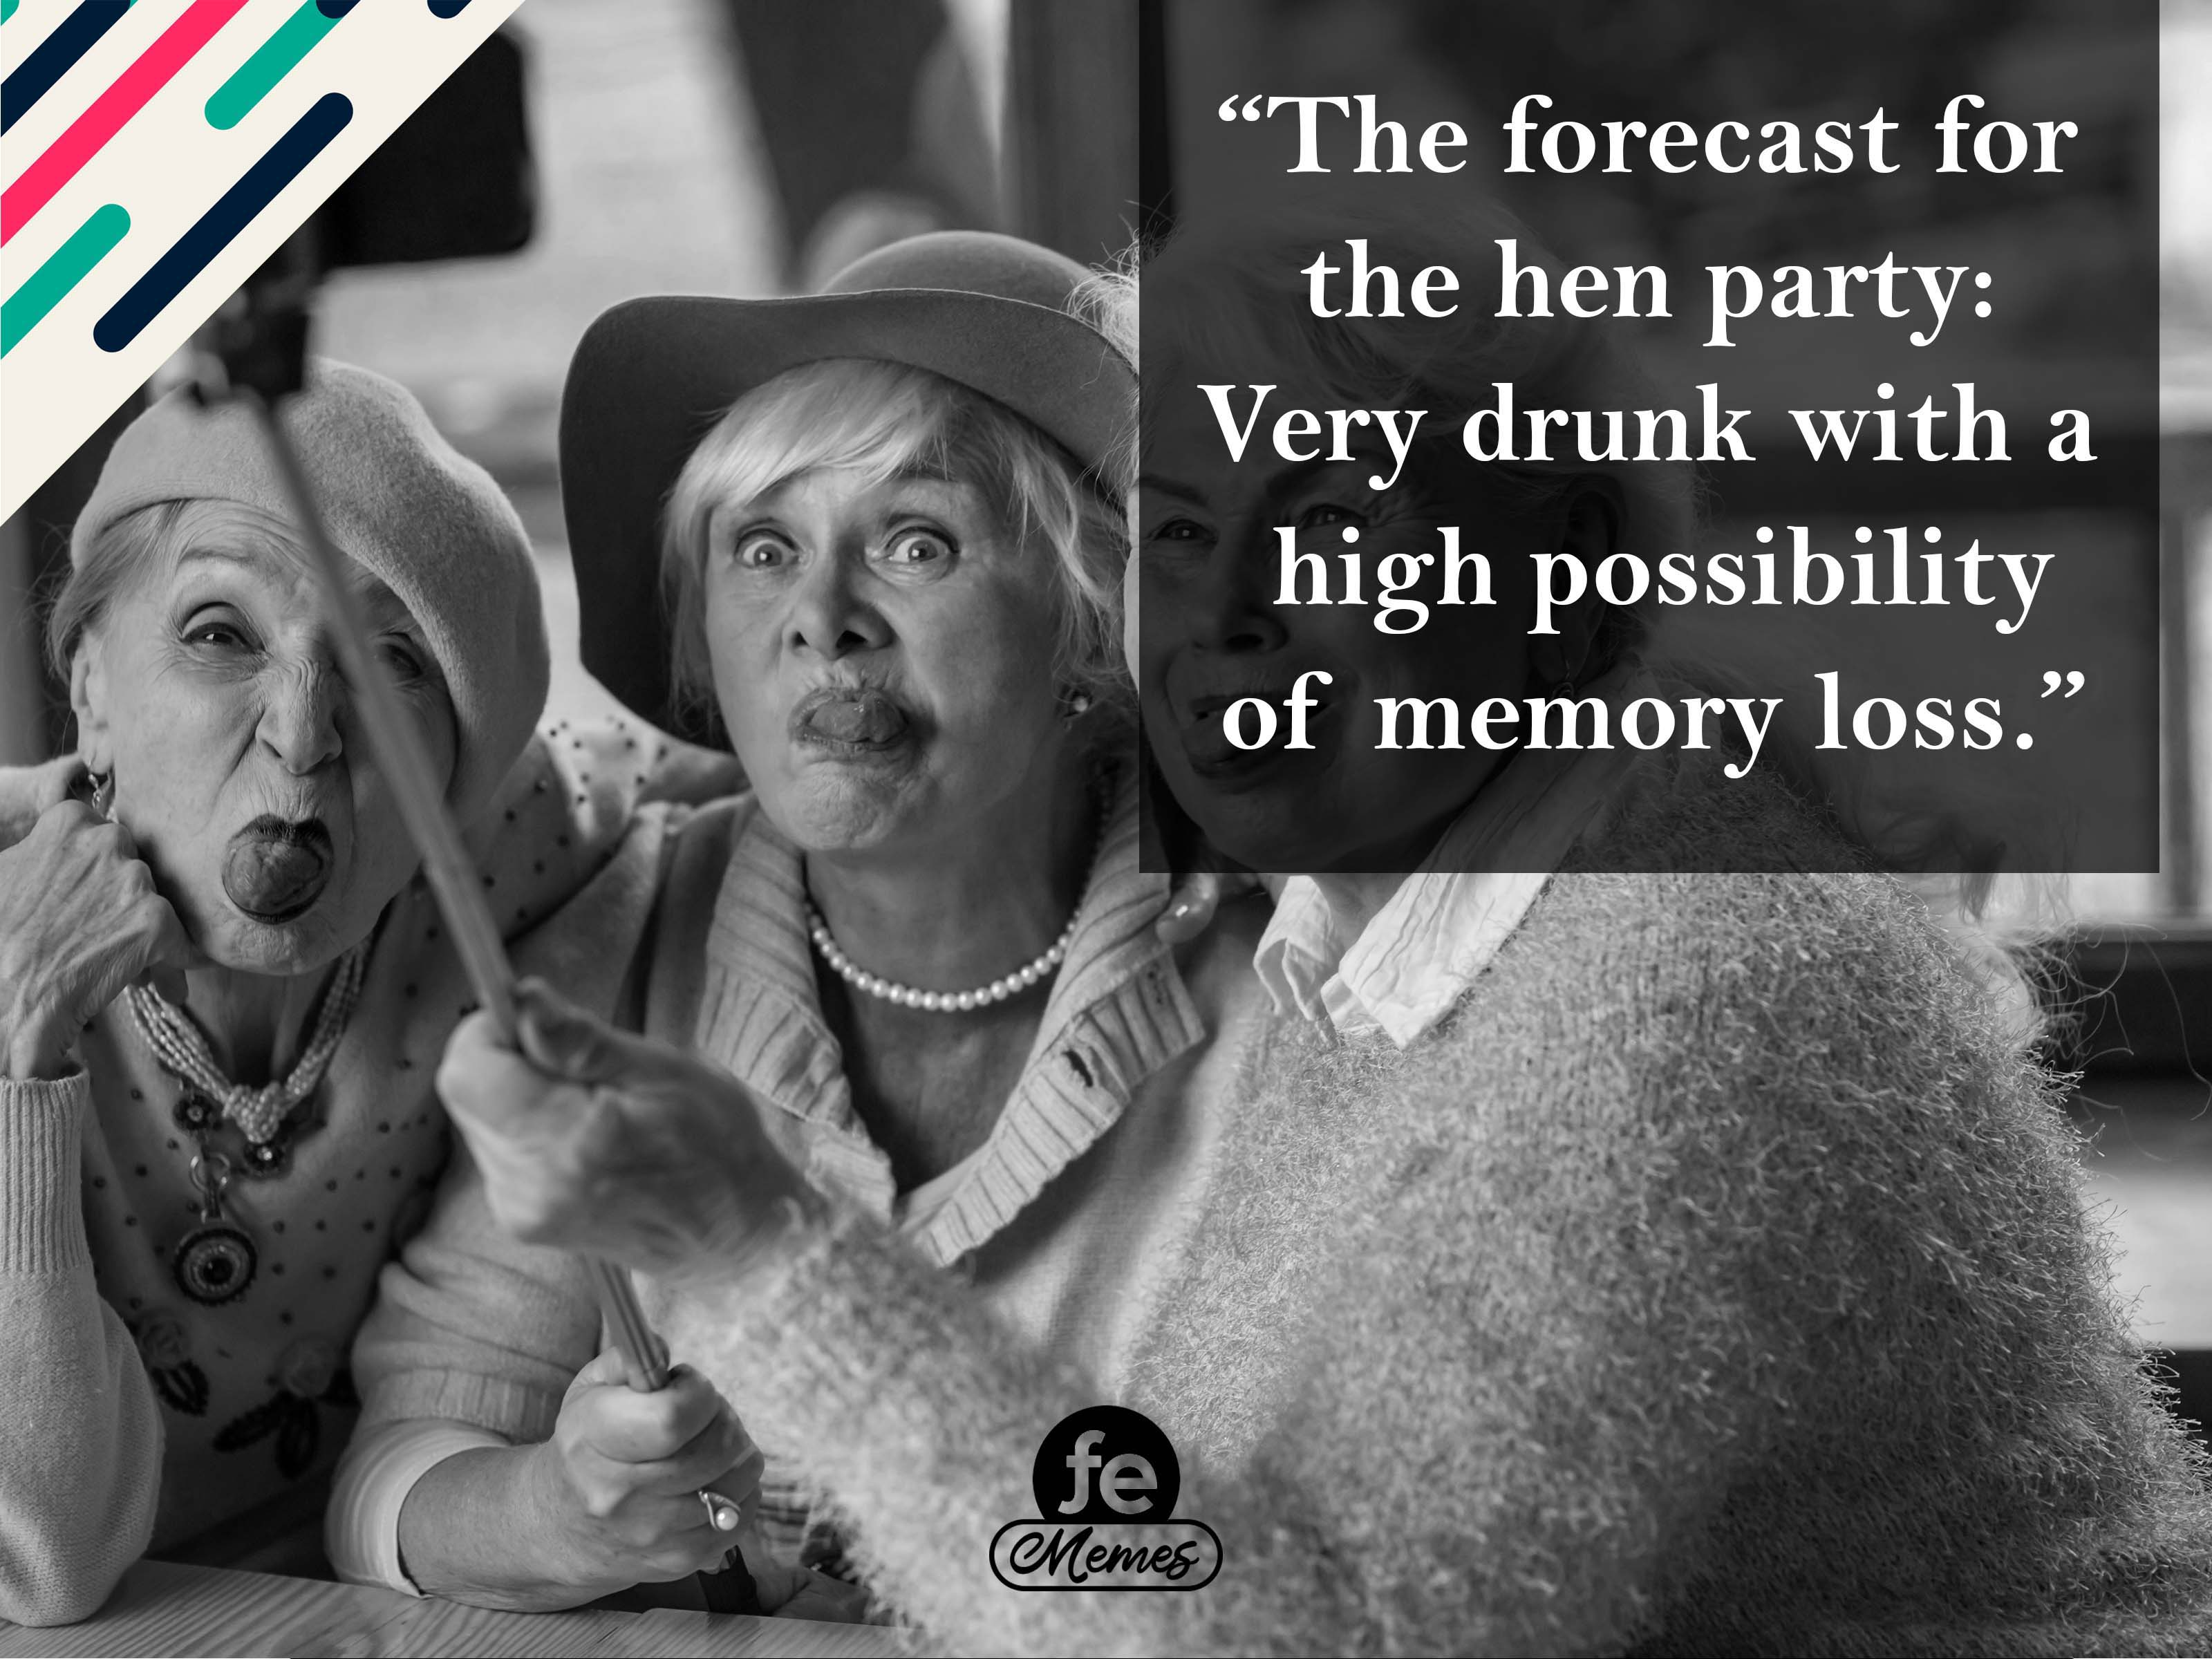 The forecast for the hen party: Very drunk with a high possibility of memory loss - Meme 16